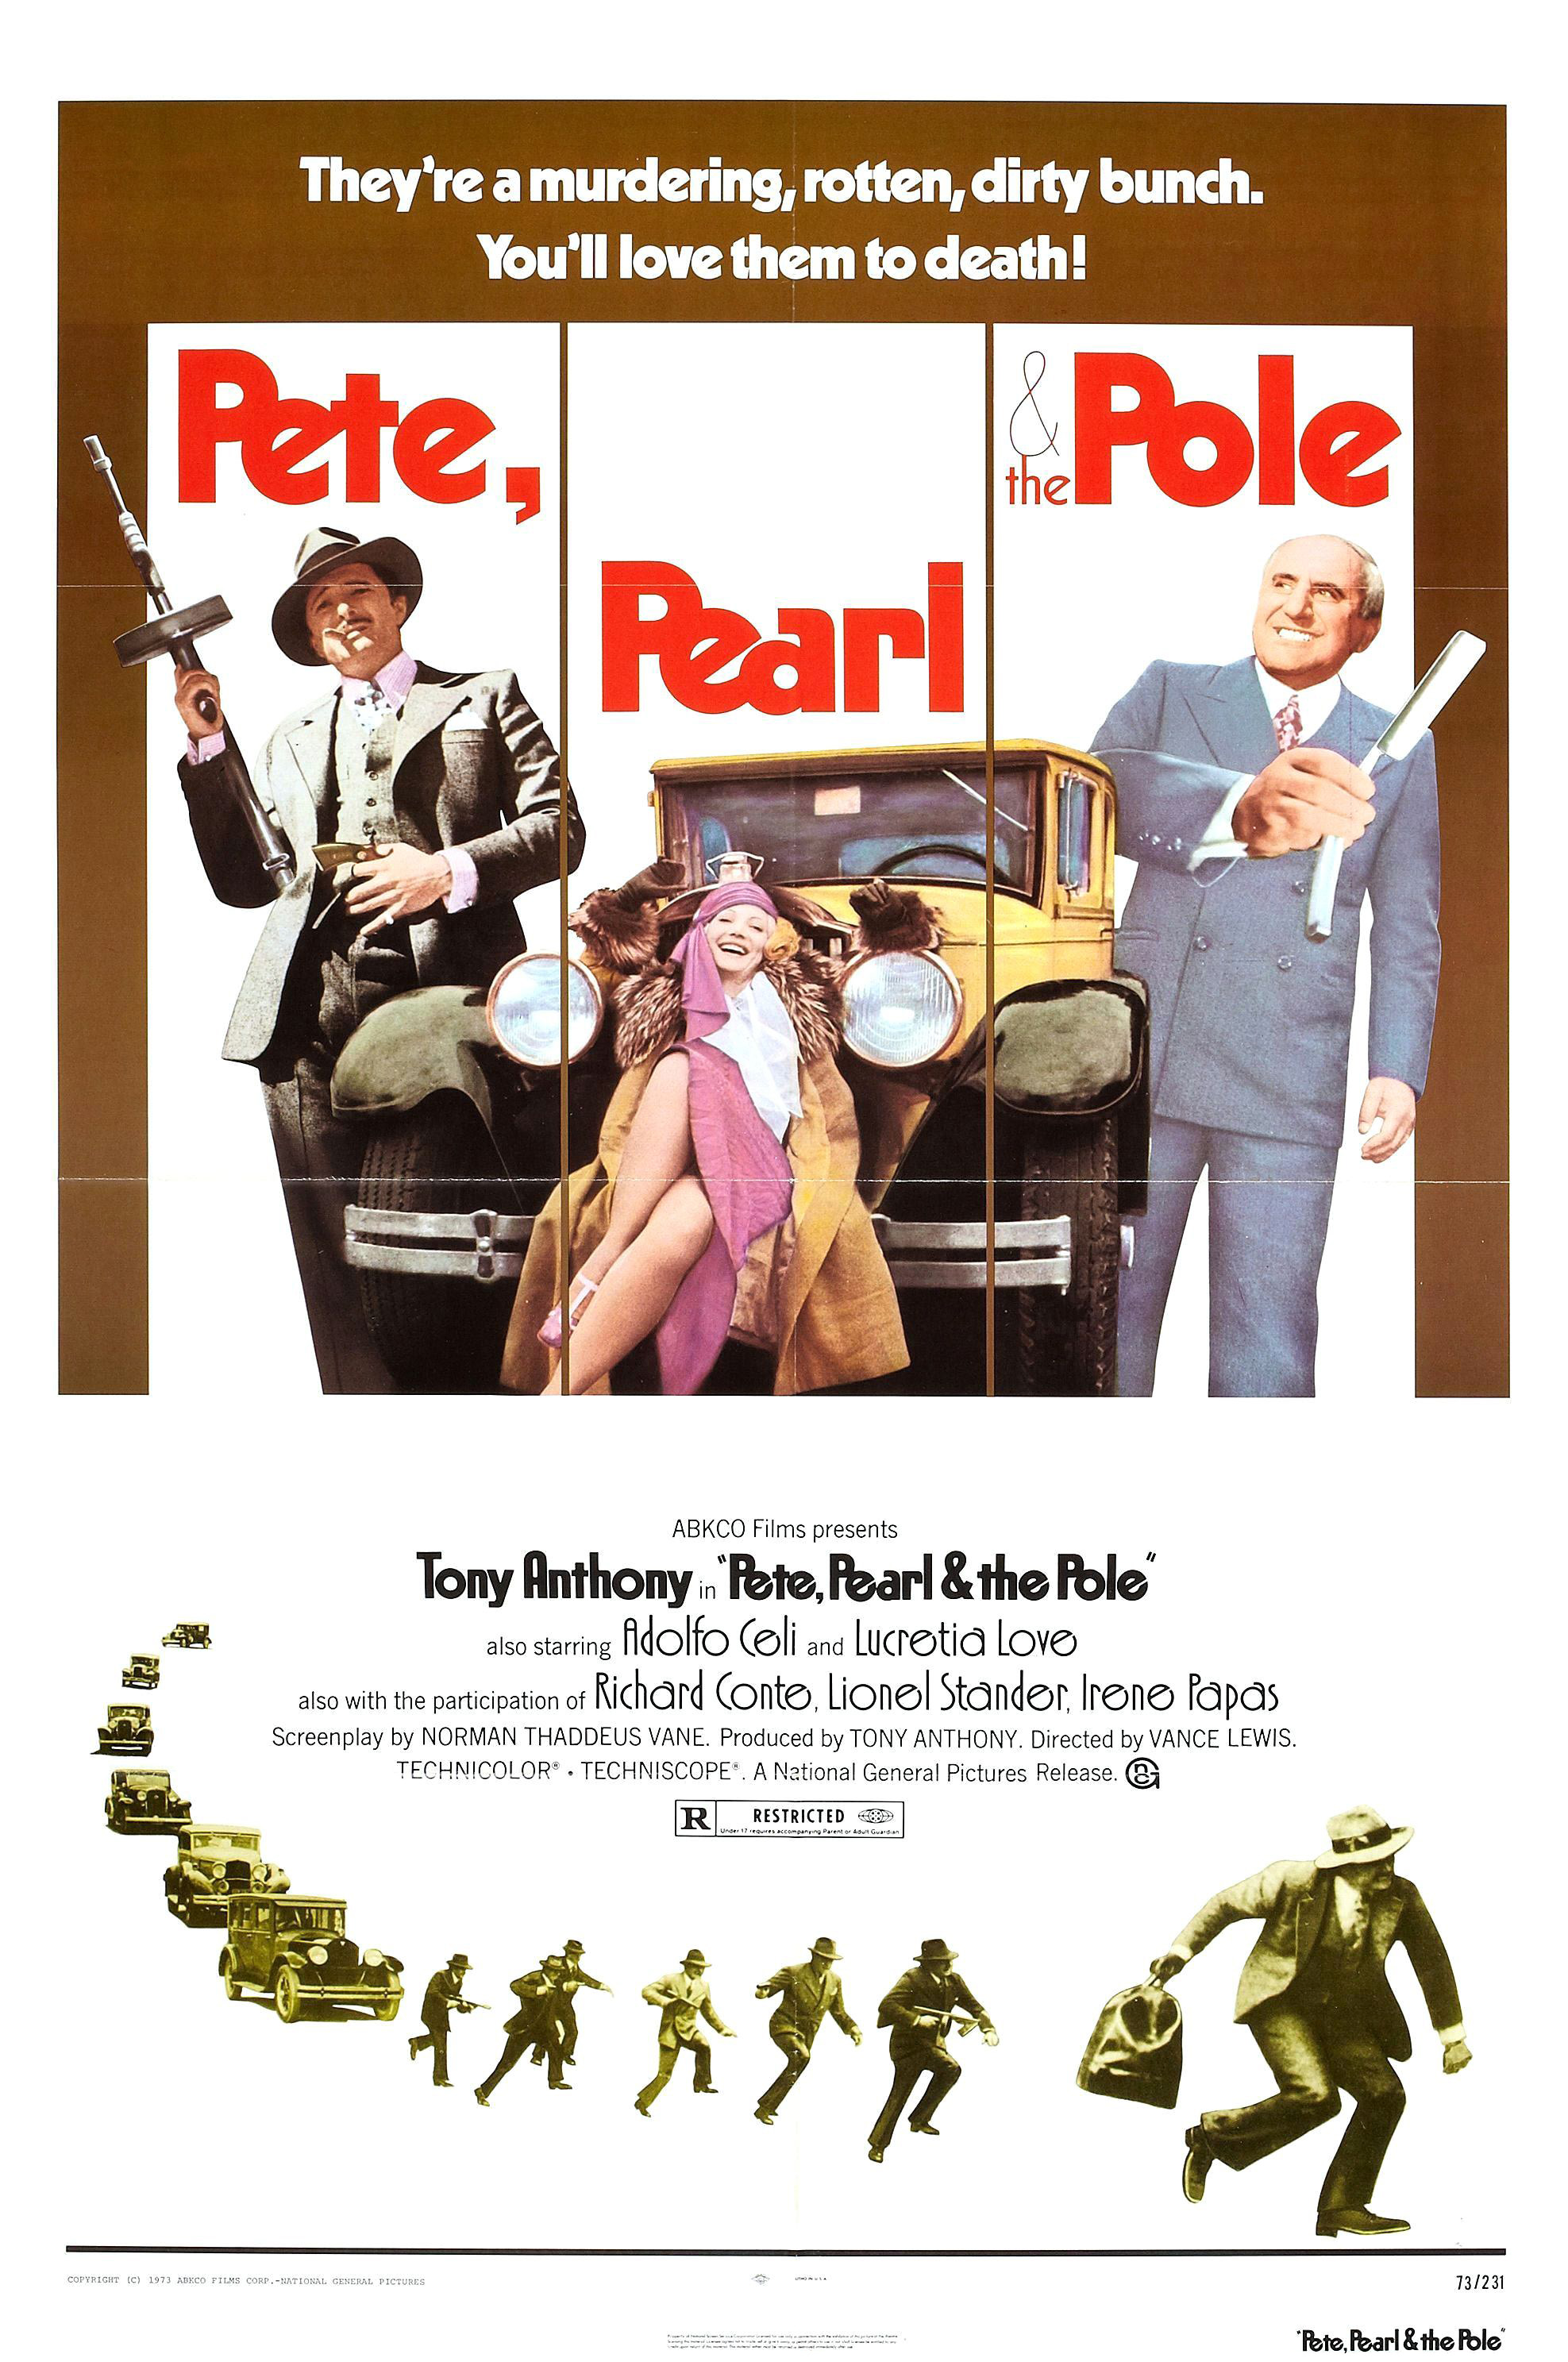 Pete, Pearl and the Pole (1974)